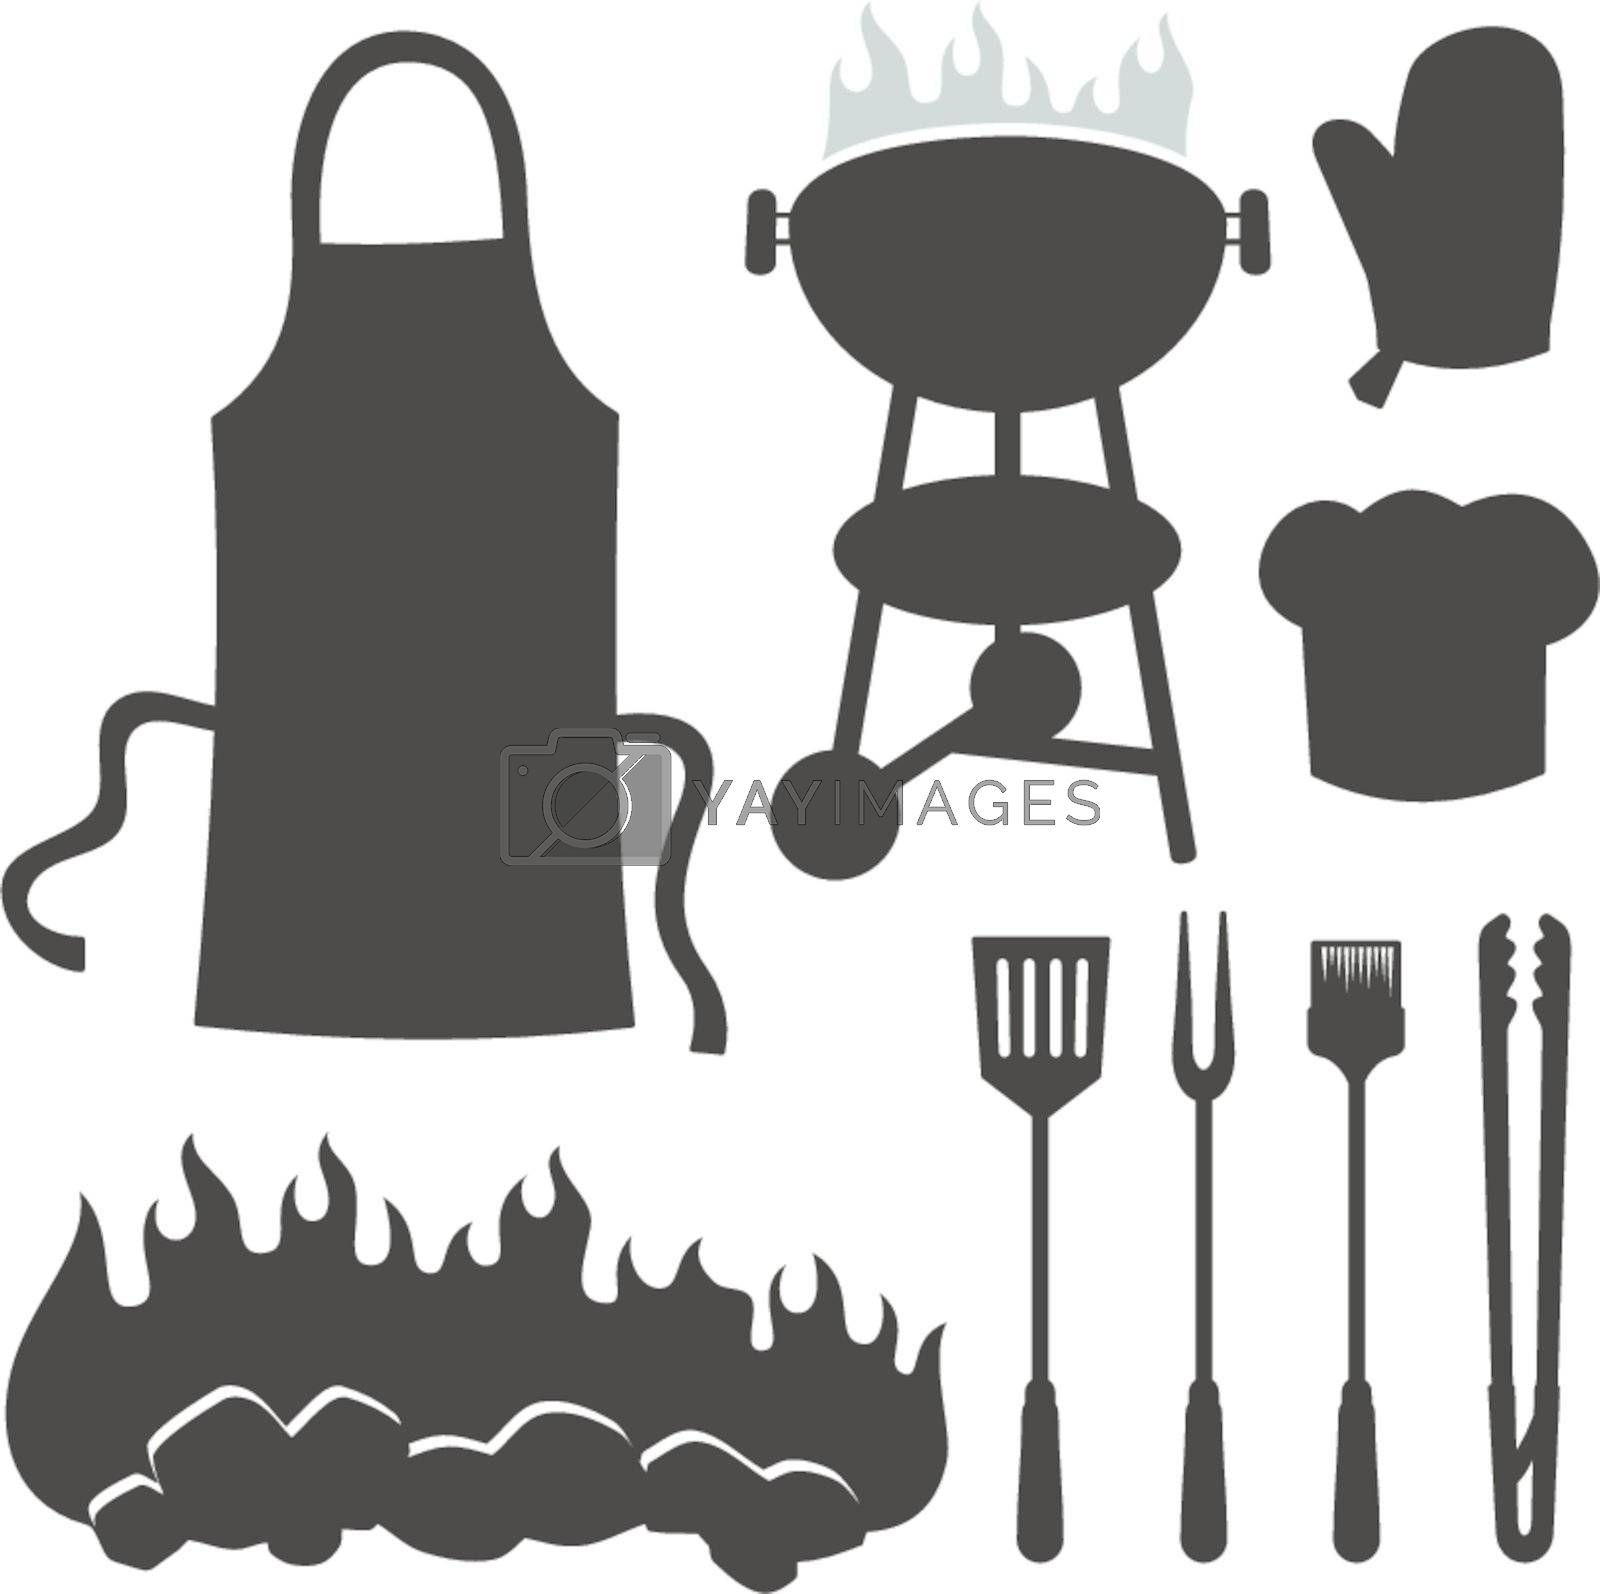 Barbeque silhouettes by sifis